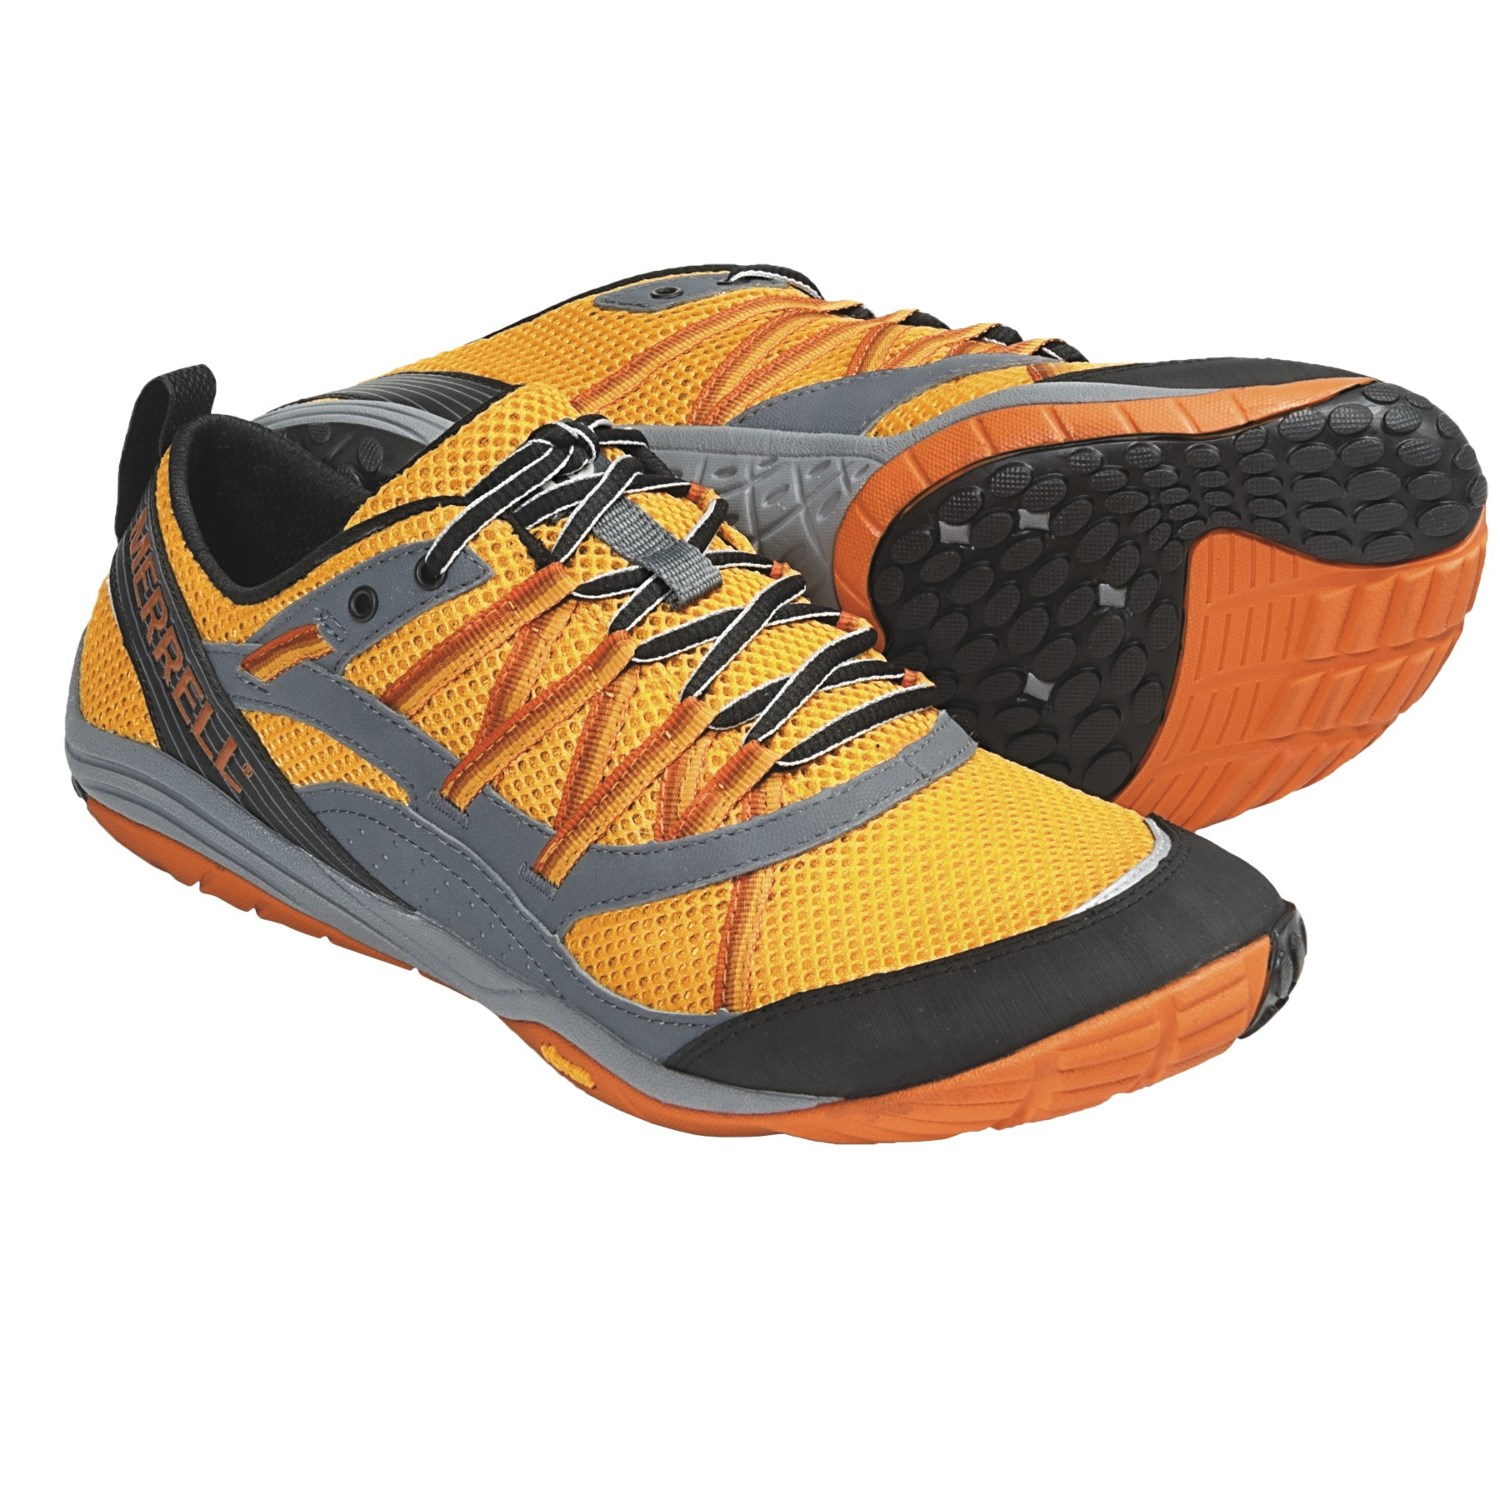 Barefoot Running Shoes Clearance